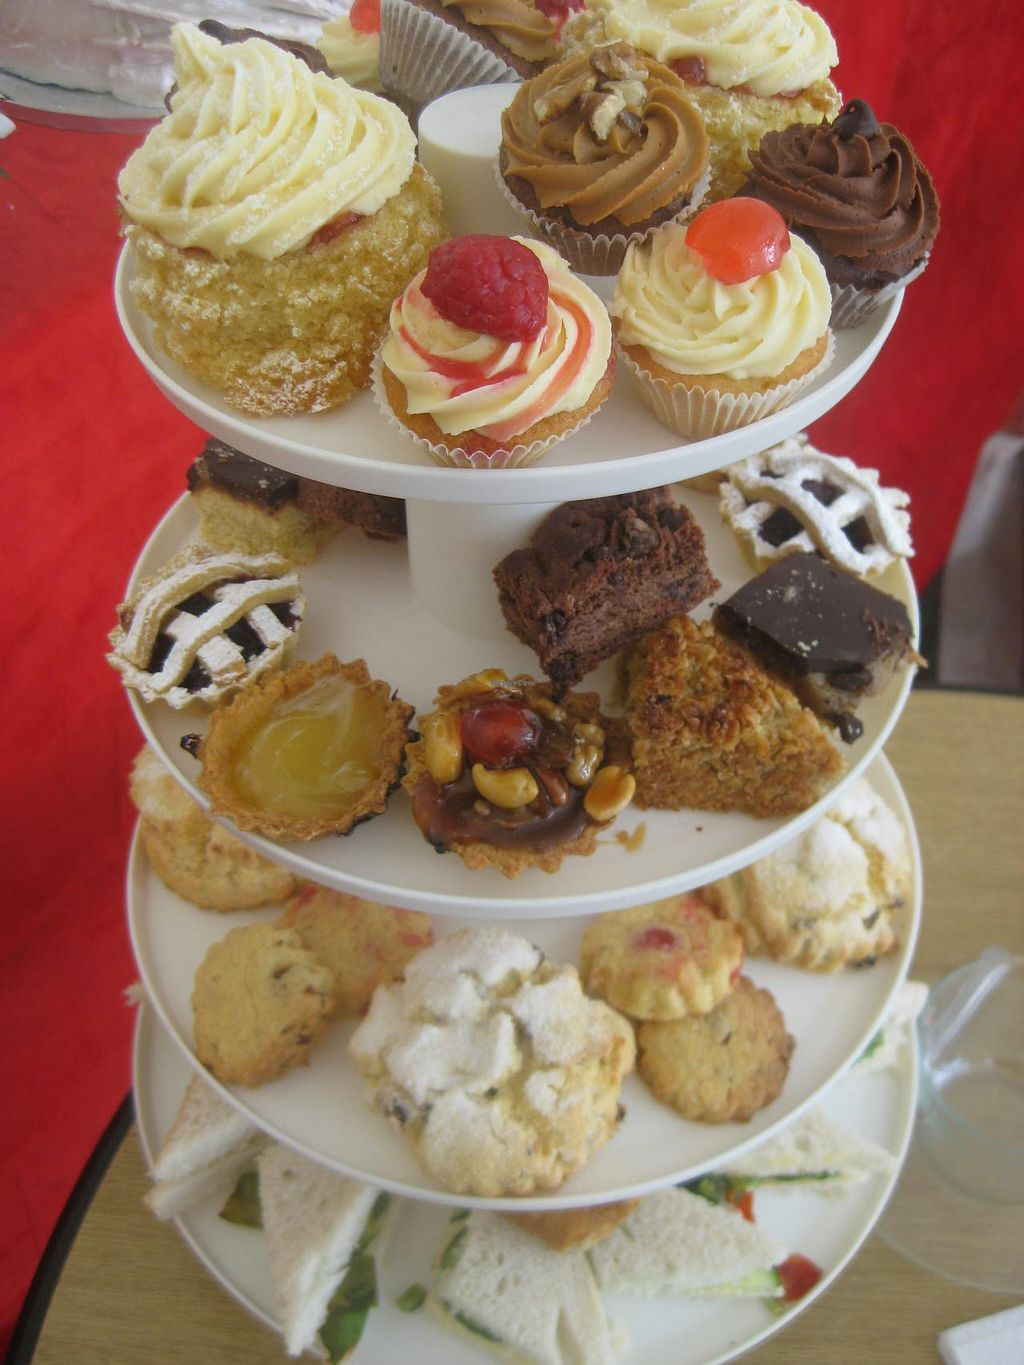 """Photo of Steel City Cakes  by <a href=""""/members/profile/jennyc32"""">jennyc32</a> <br/>Afternoon tea <br/> June 3, 2015  - <a href='/contact/abuse/image/44574/104626'>Report</a>"""